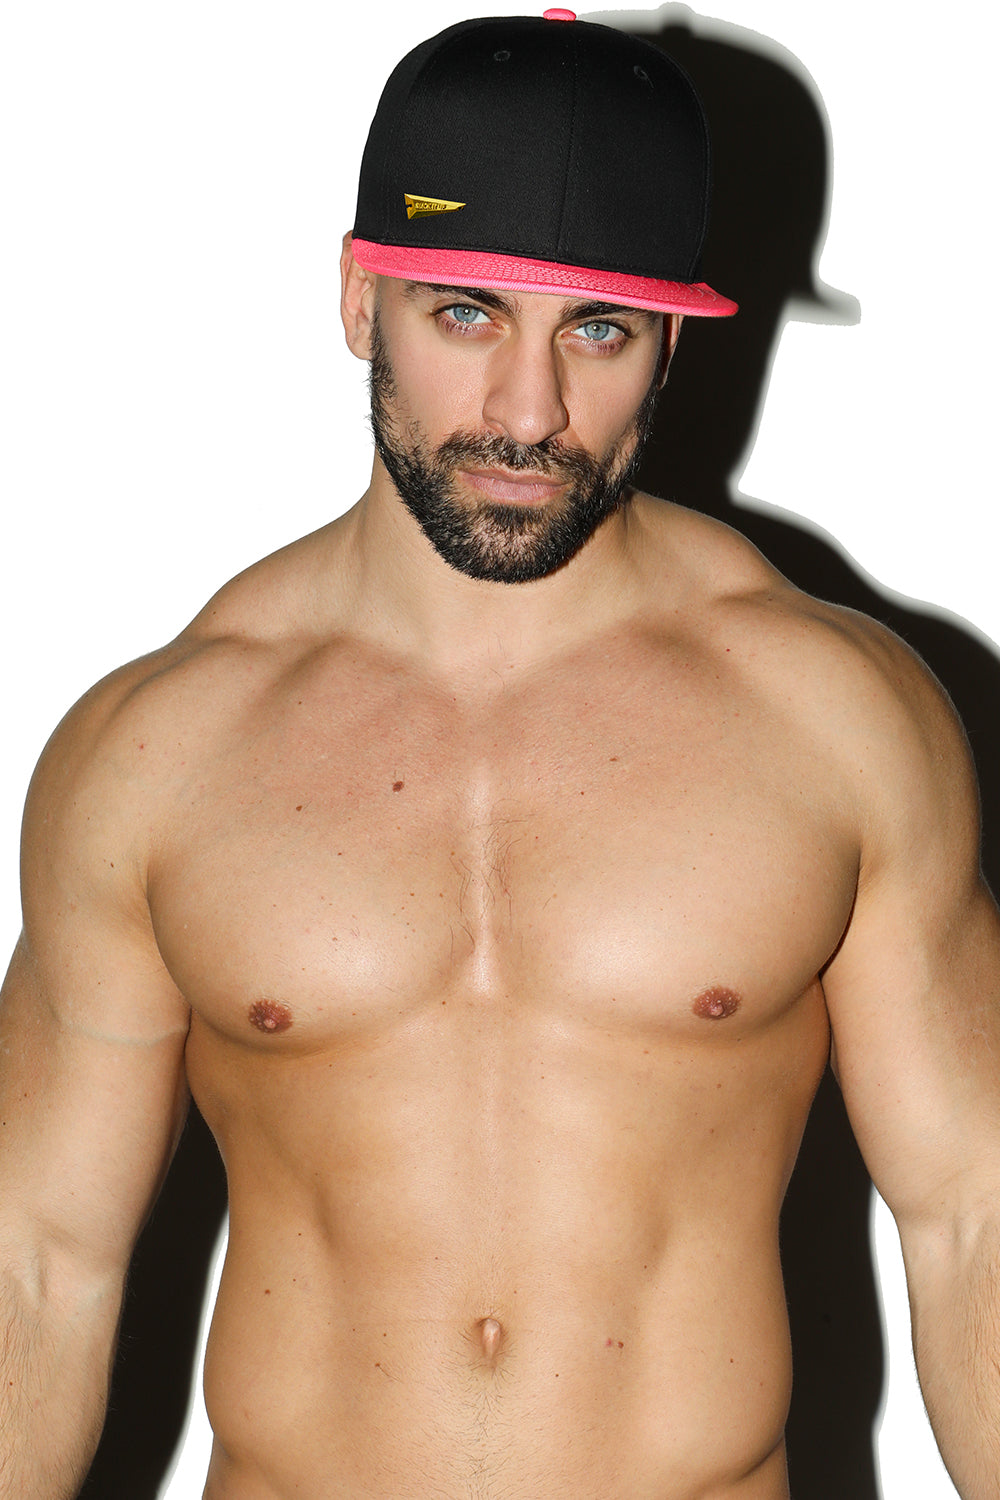 Neon Pink and Black Snap Back Hat